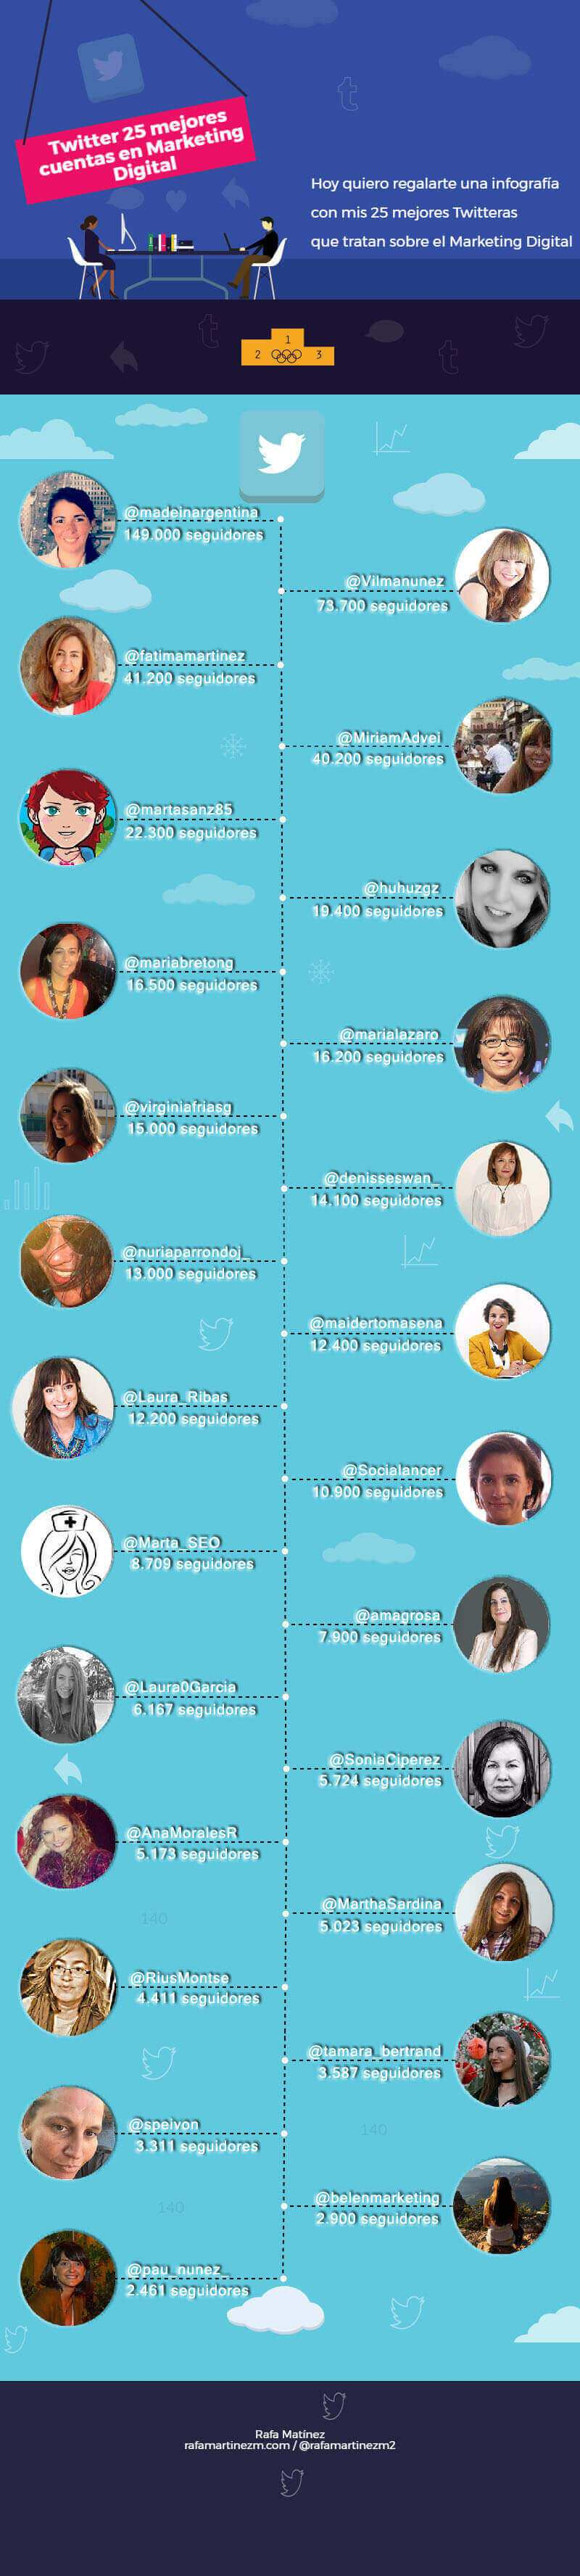 25 mejores twitteras de Marketing Digital